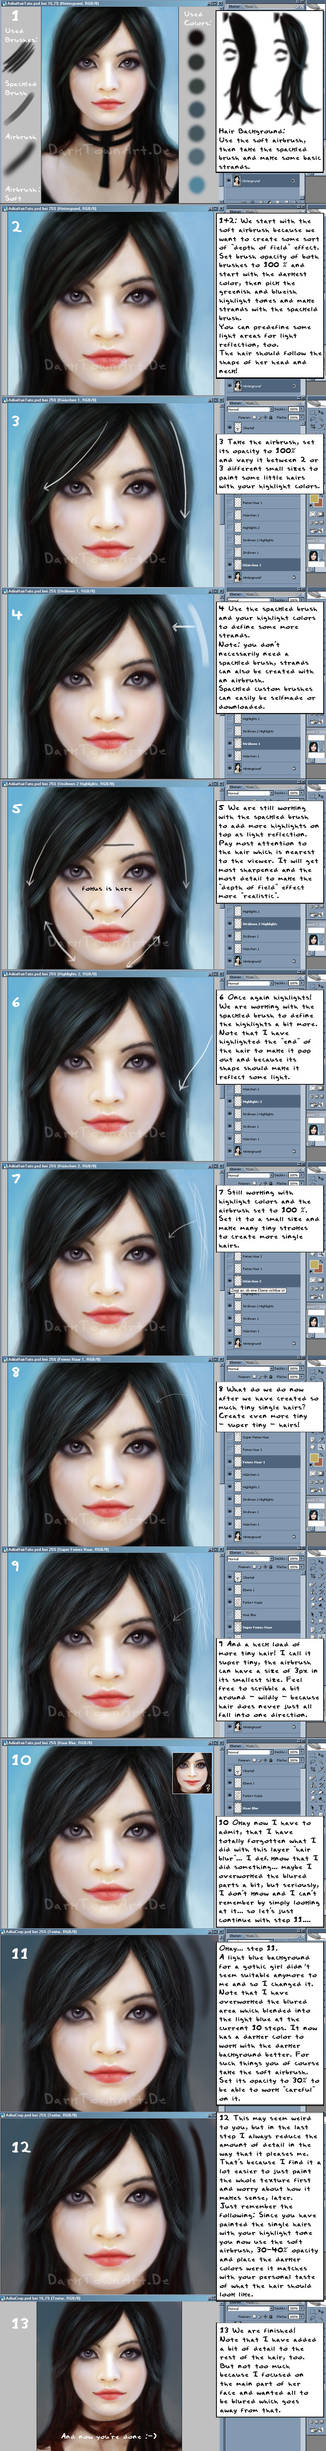 Tutorial: How to Paint Hair